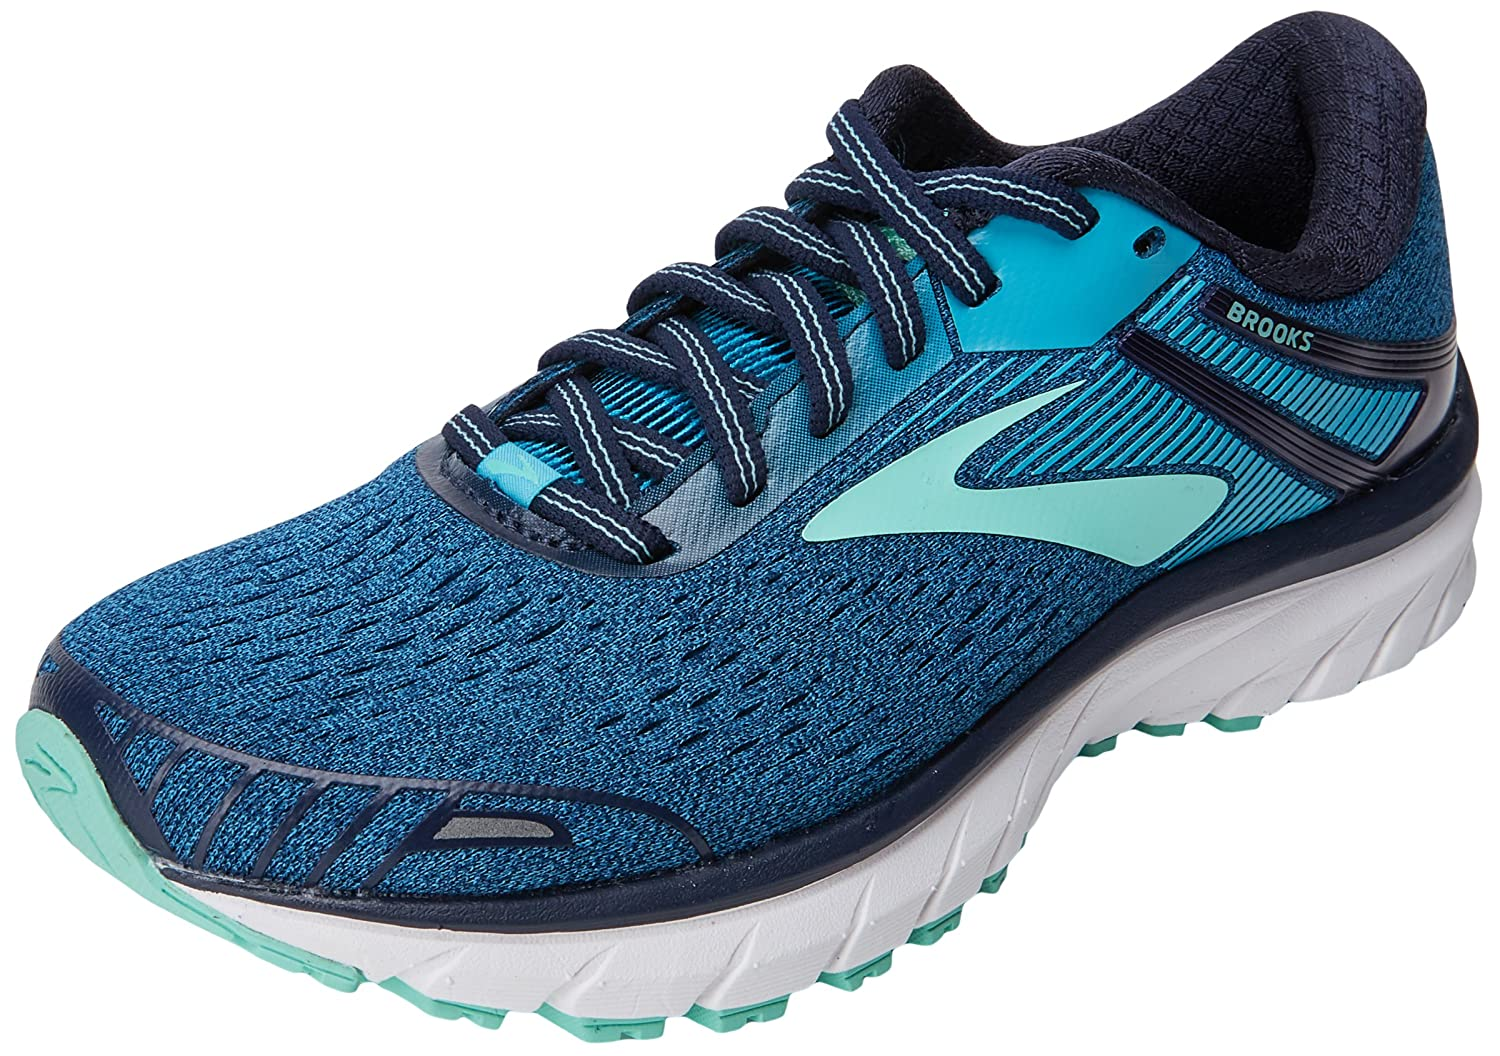 激安通販新作 Brooks Women's Navy/Teal - Adrenaline Gts 18 B071NSP9KH 9 Navy/Teal 9 D - Wide 9 D - Wide|Navy/Teal, ヒラツカシ:5877b3f0 --- svecha37.ru